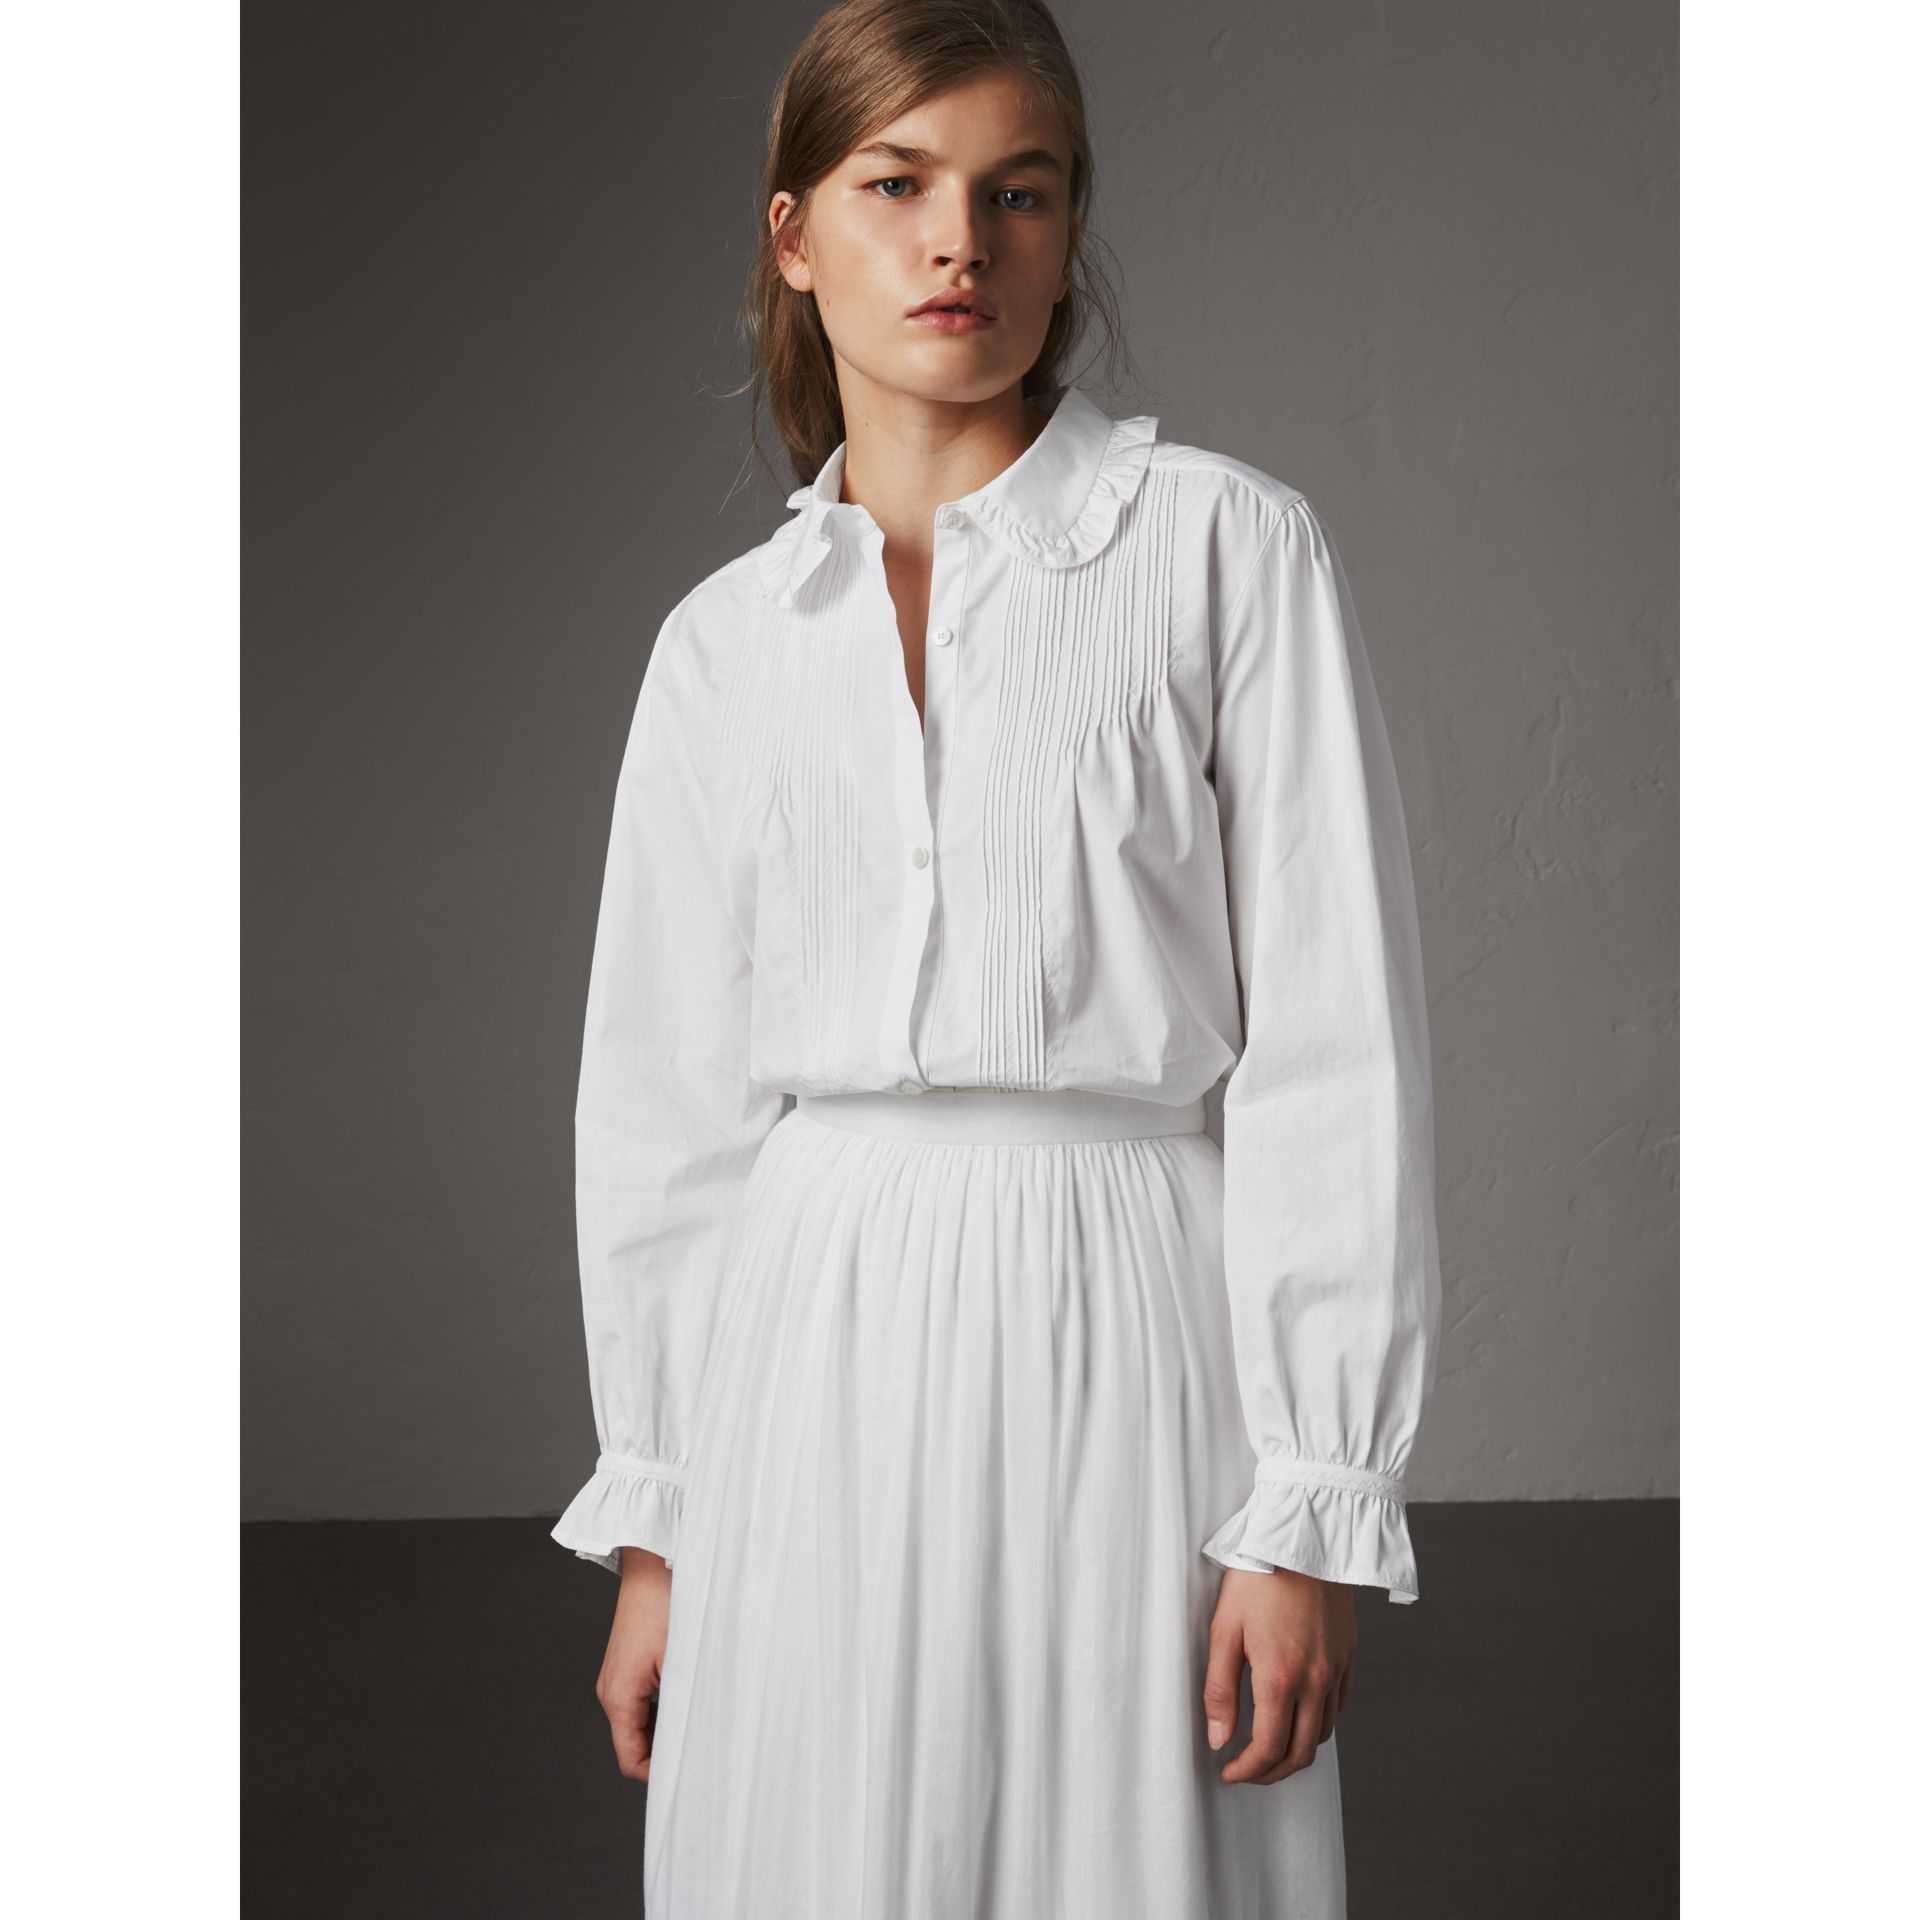 Ruffle and Pintuck Detail Cotton Shirt in White - Women | Burberry United States - gallery image 0